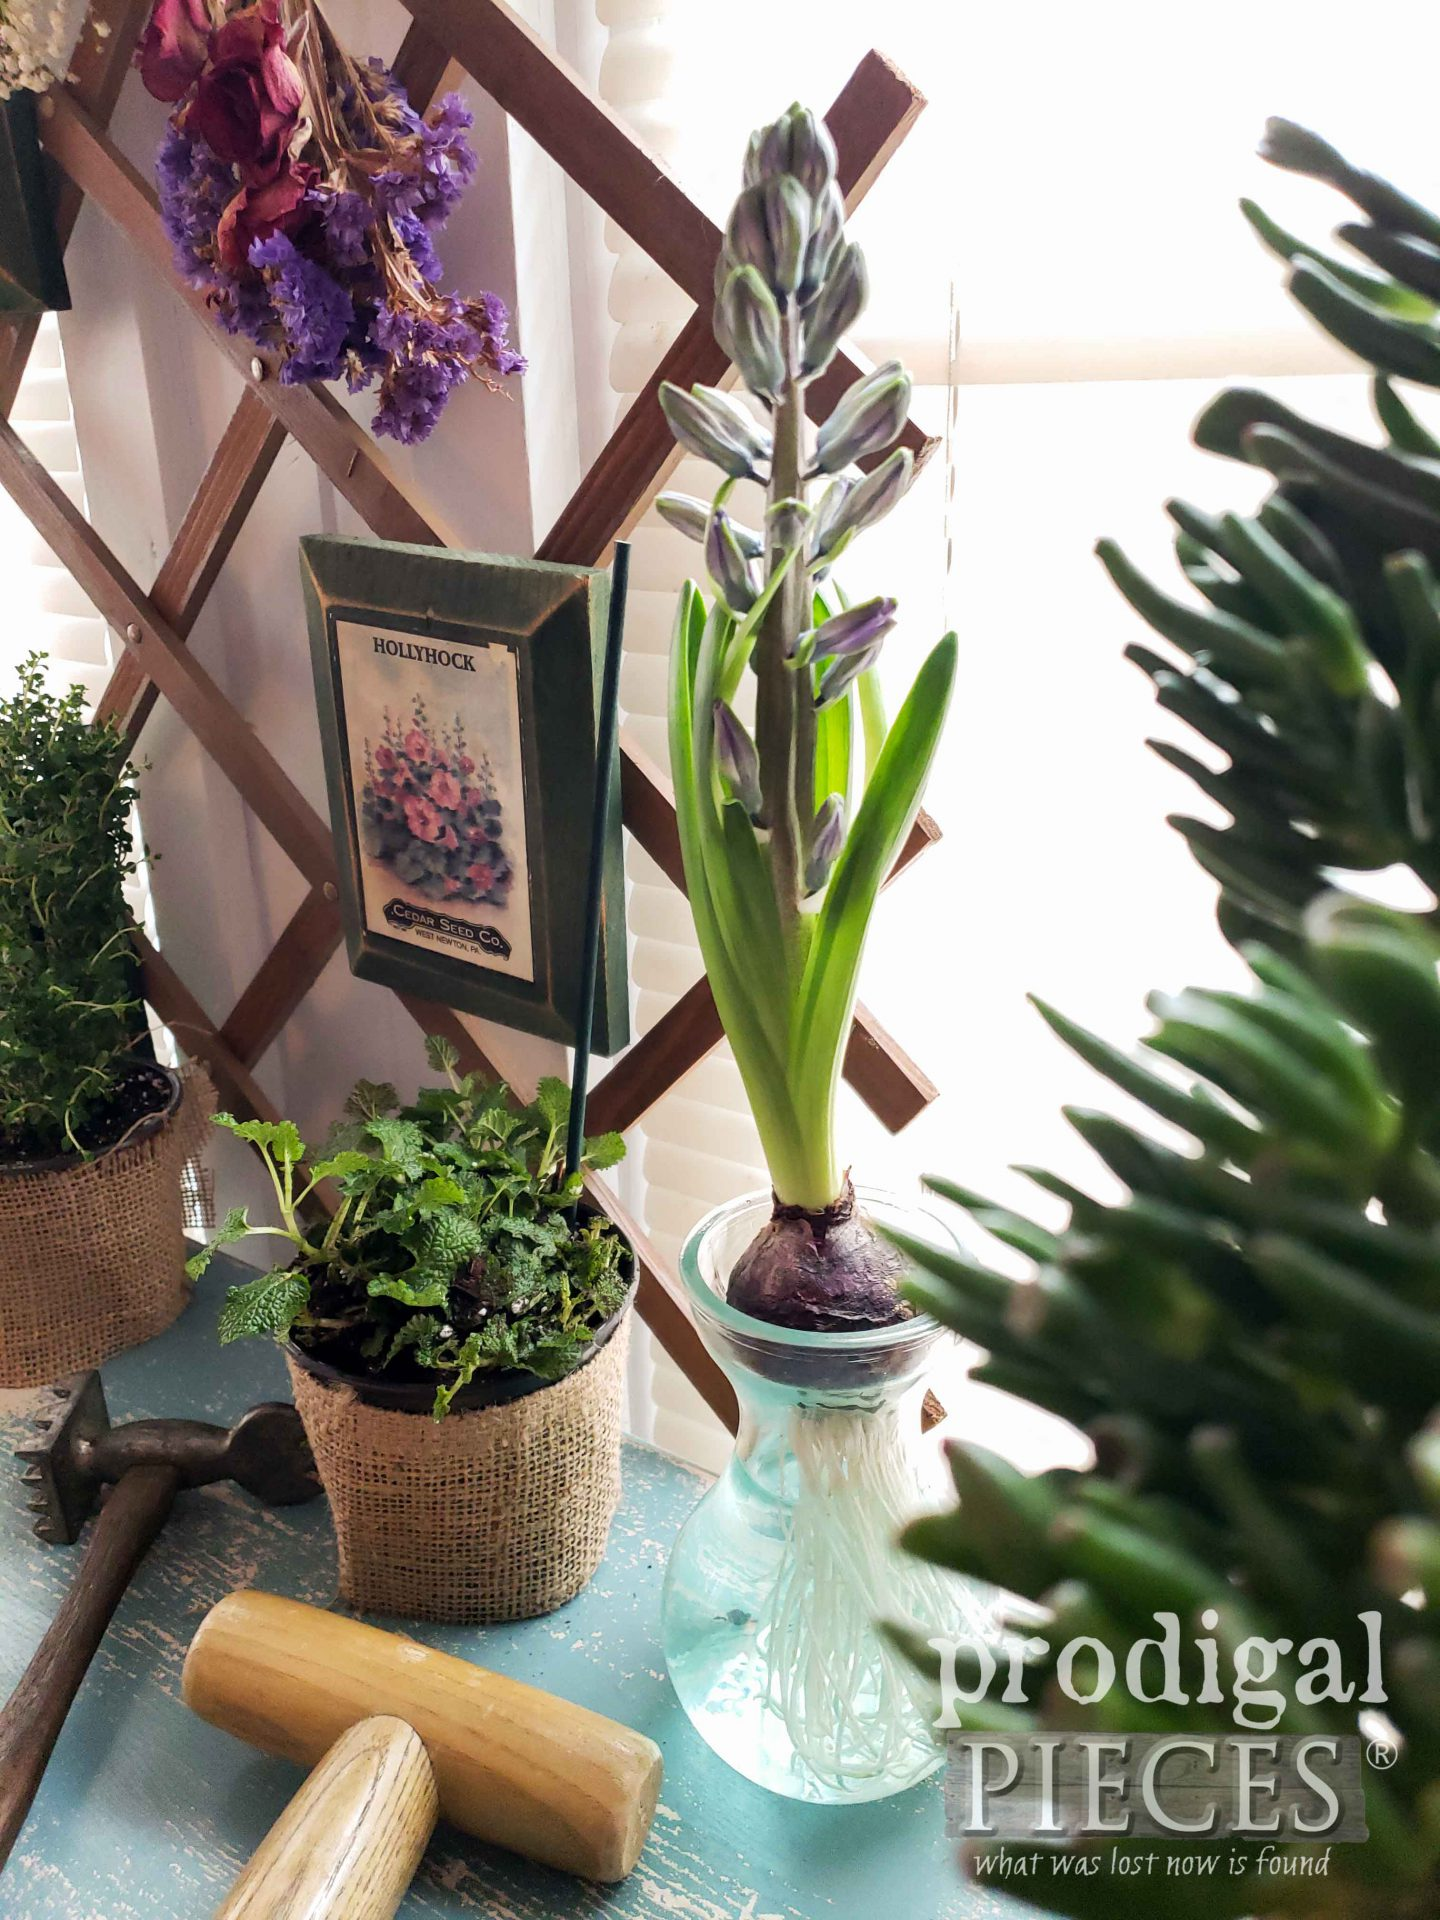 Blue Hyacinth Flower in Farmhouse Decor by Larissa of Prodigal Pieces | prodigalpieces.com #prodigalpieces #flowers #garden #hyacinth #farmhouse #home #homedecor